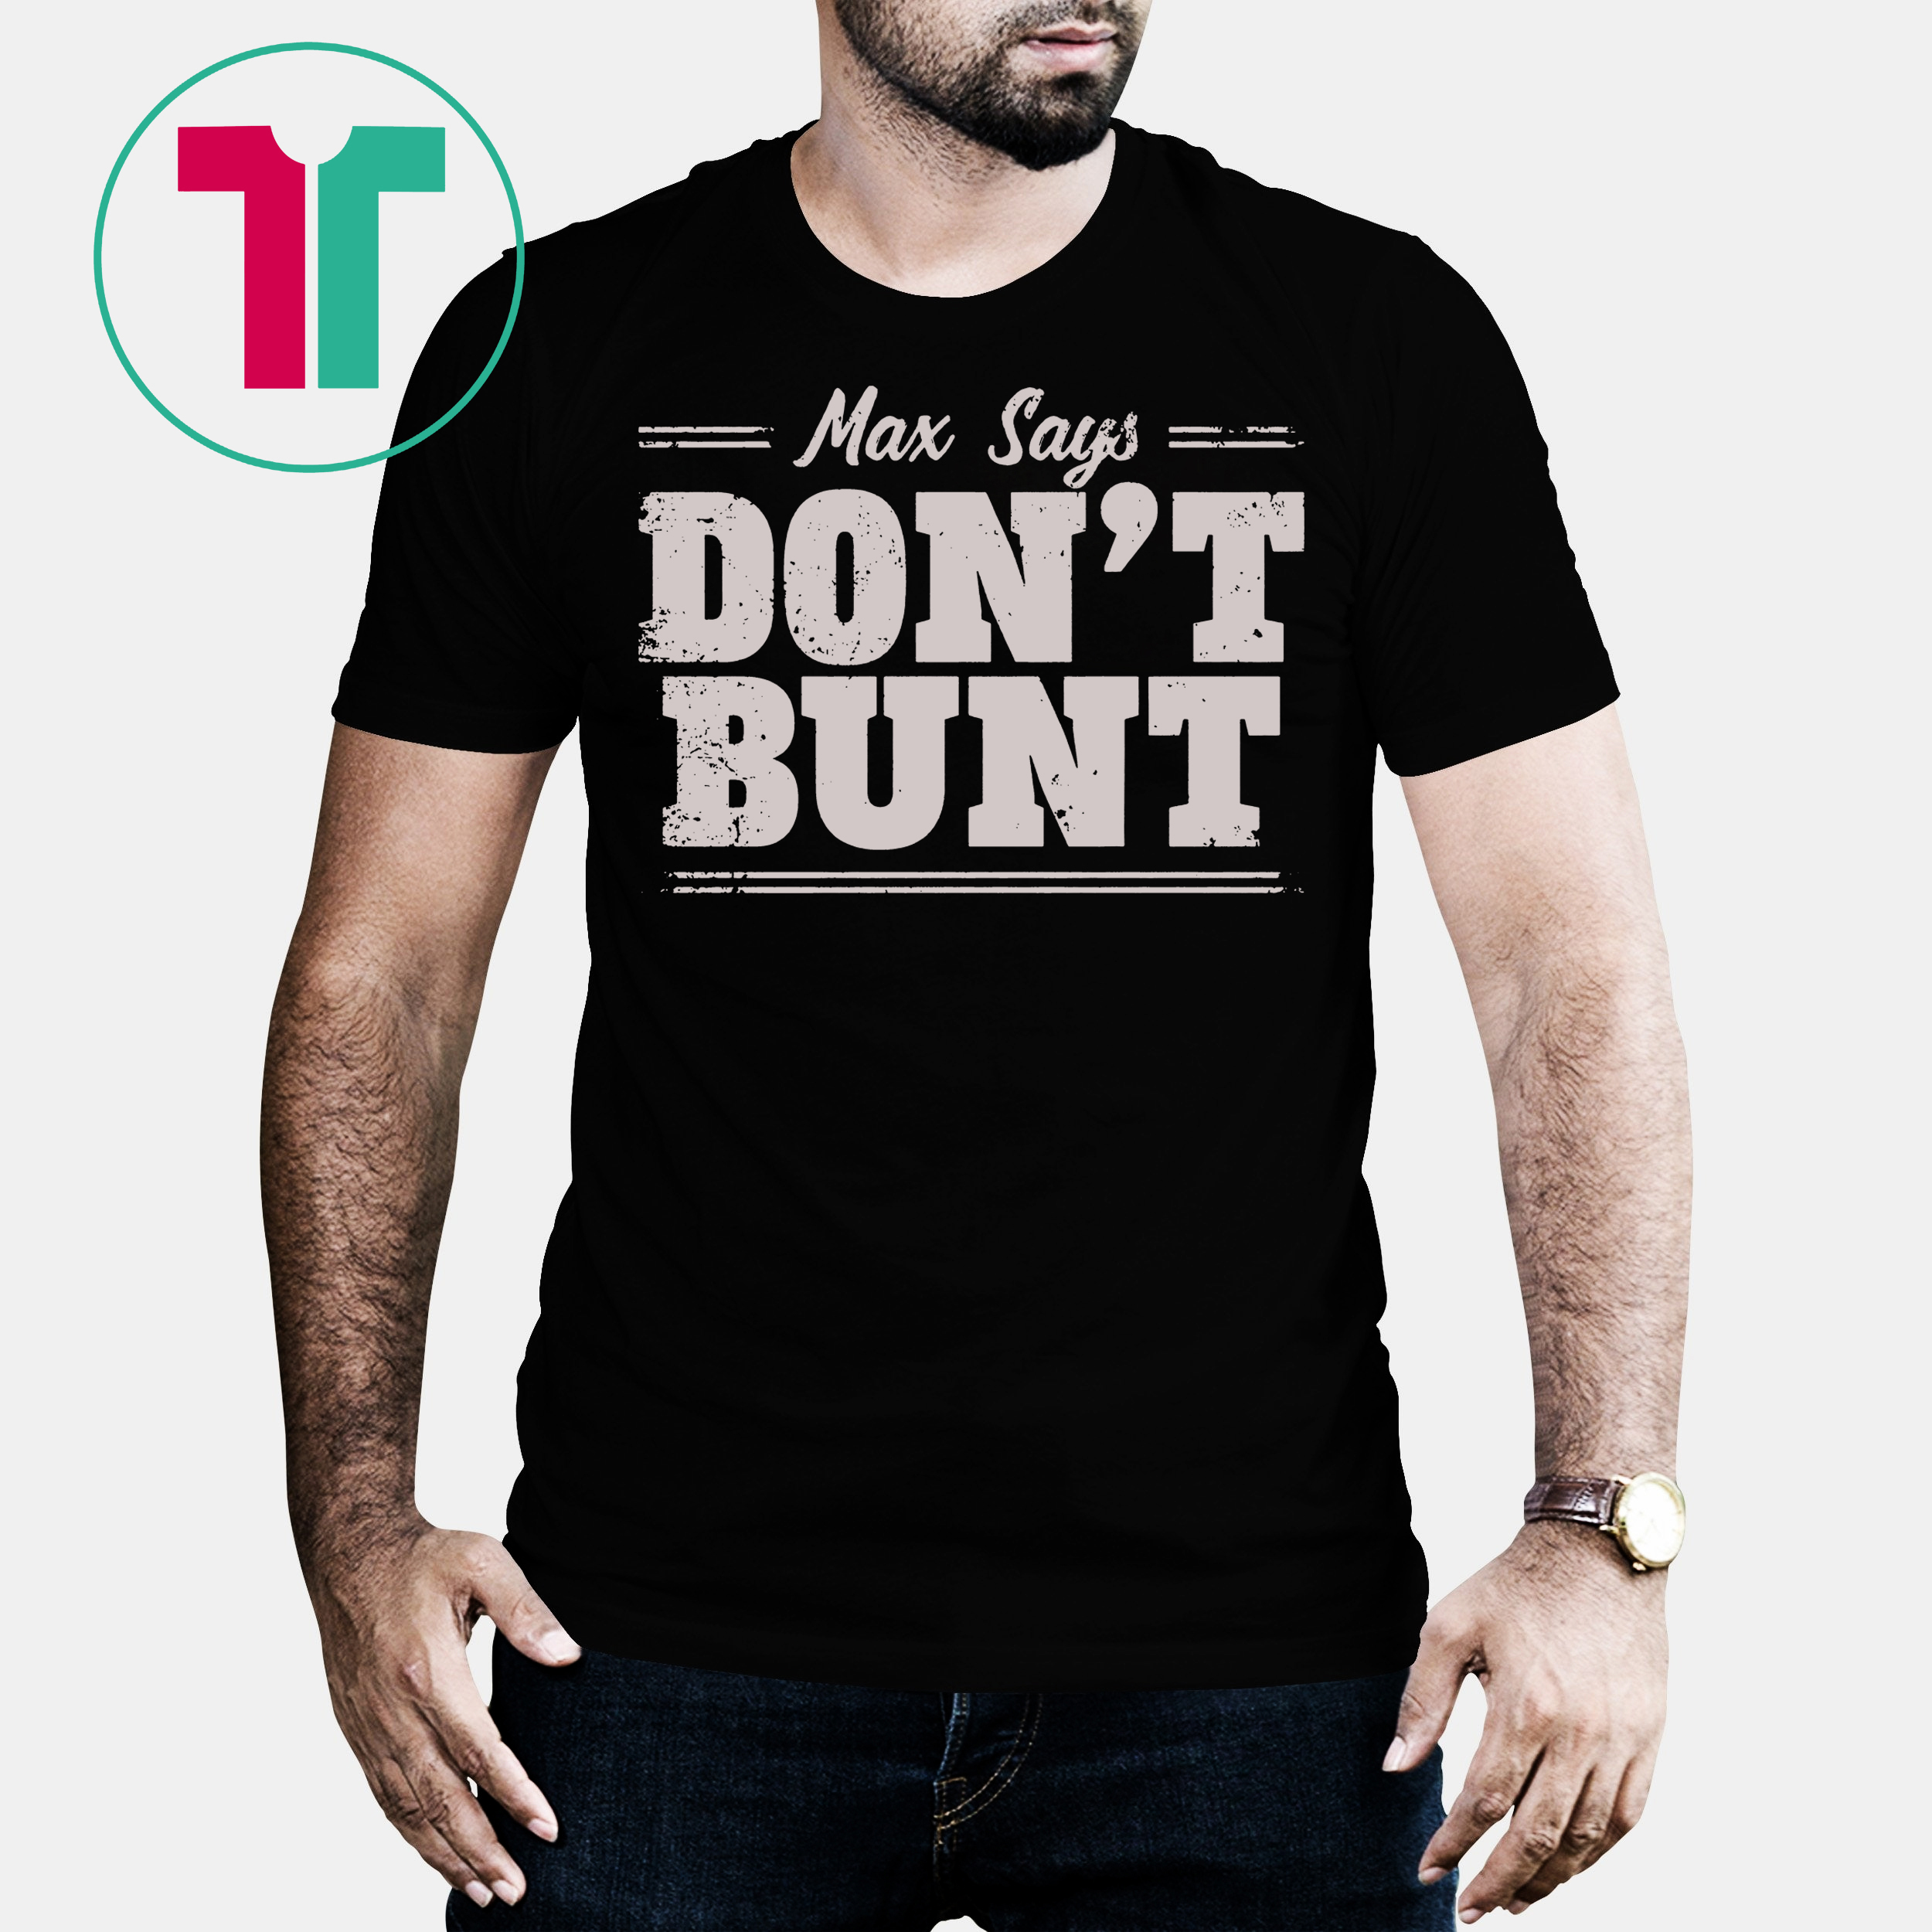 online store 8bfe9 0aea9 Max Says Don't Bunt Shirt Bunting is Bad Max Scherzer Shirt - Reviewshirts  Office